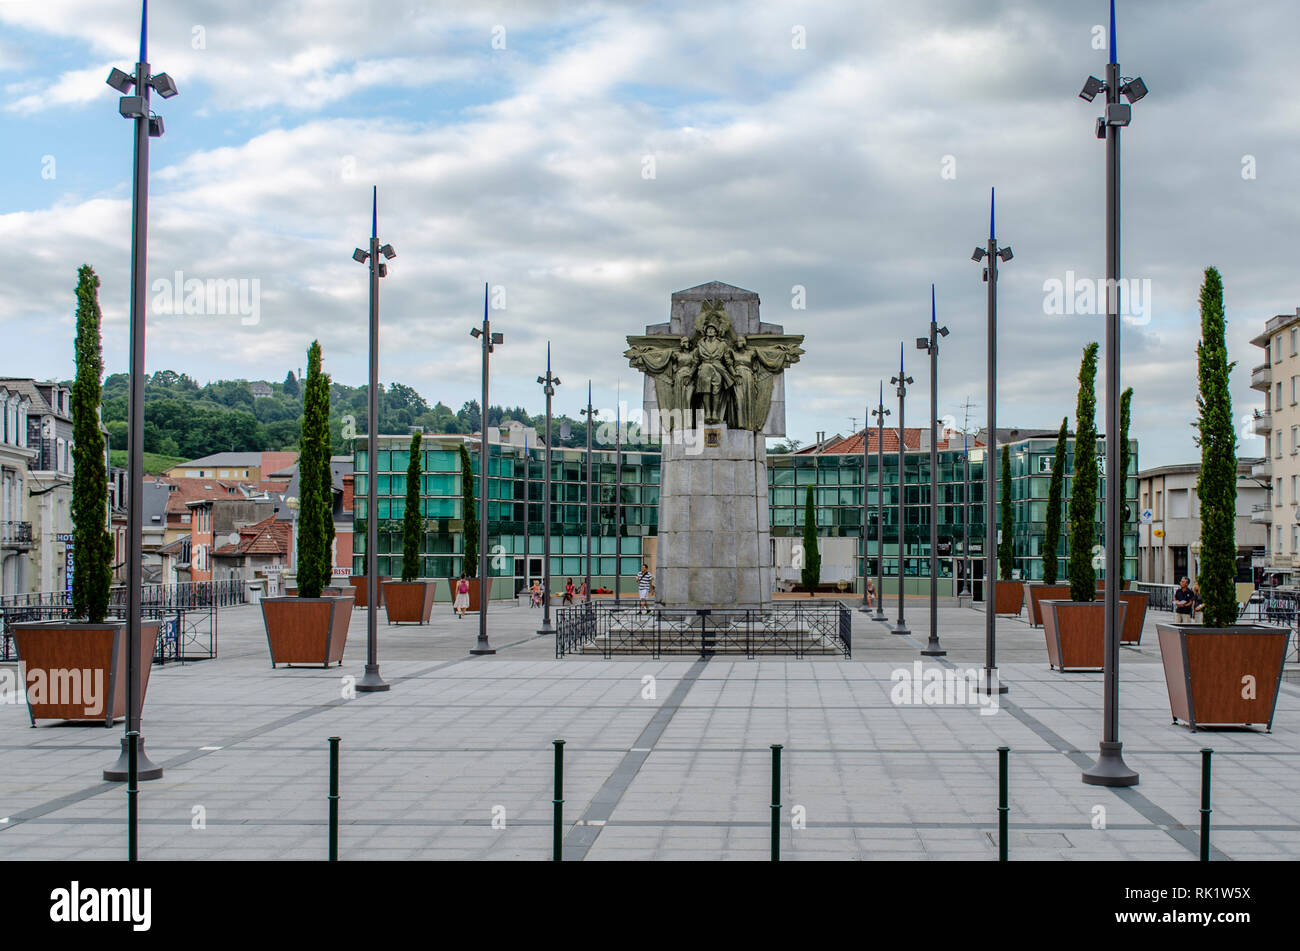 Lourdes, France; August 2013:   Lourdes, France; August 2013: El Monument to the Dead of the Escultor François Mourgues is located in the Peyramale P - Stock Image